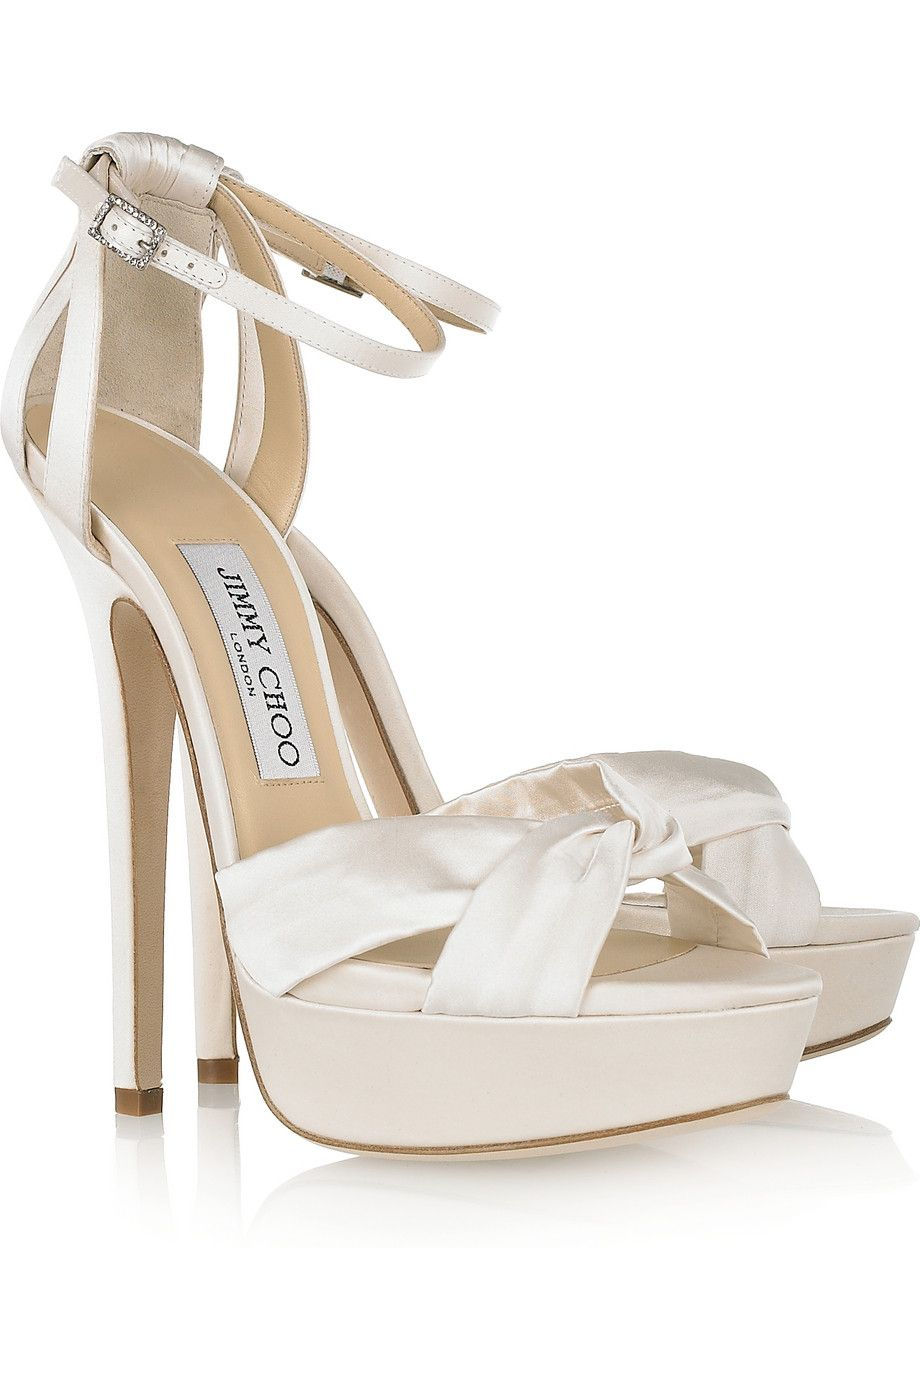 905b3cea0a0 Jimmy Choo s perfect bridal sandals...yours for just  300